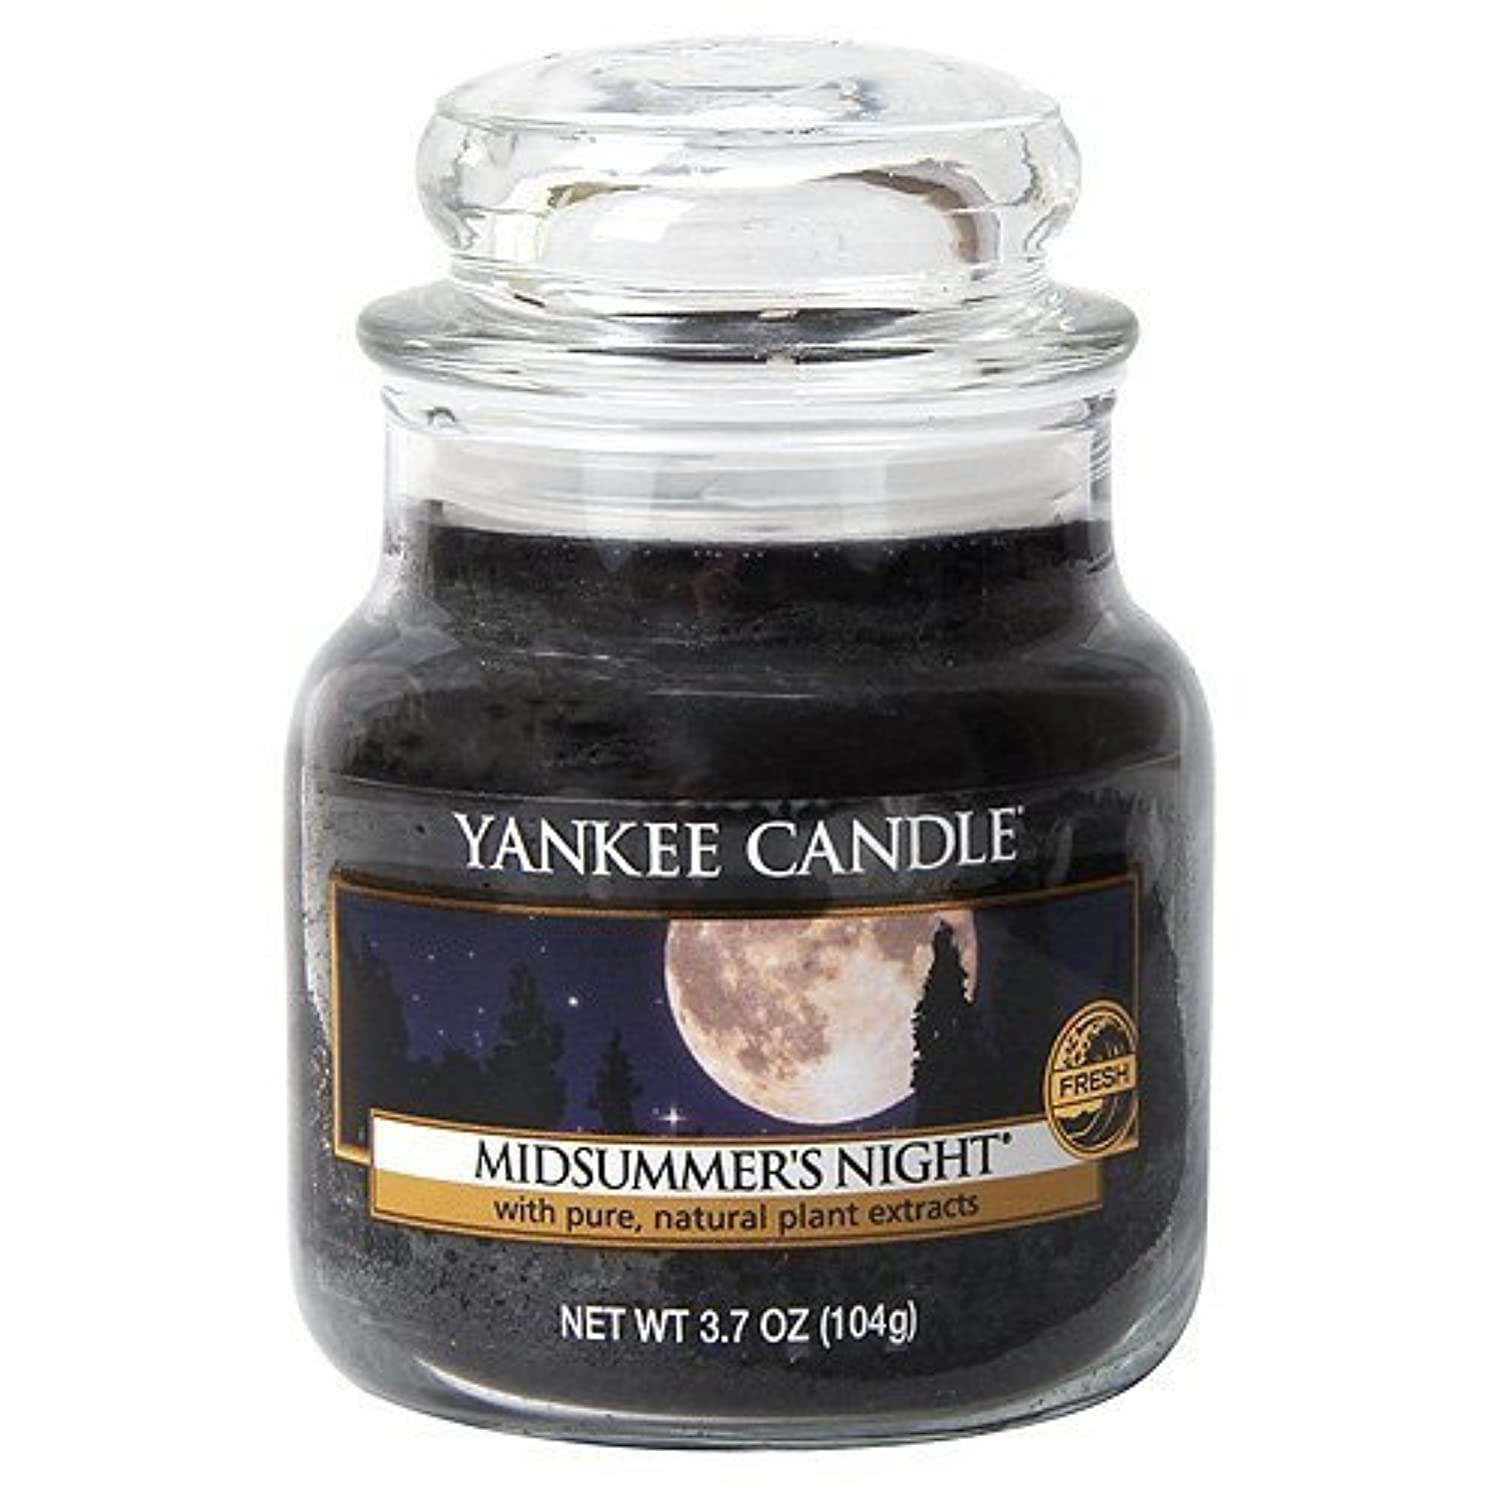 鉛筆設計図ドアミラーYankee Candle Midsummer's Night Small Jar Candle, Fresh Scent by Yankee Candle [並行輸入品]